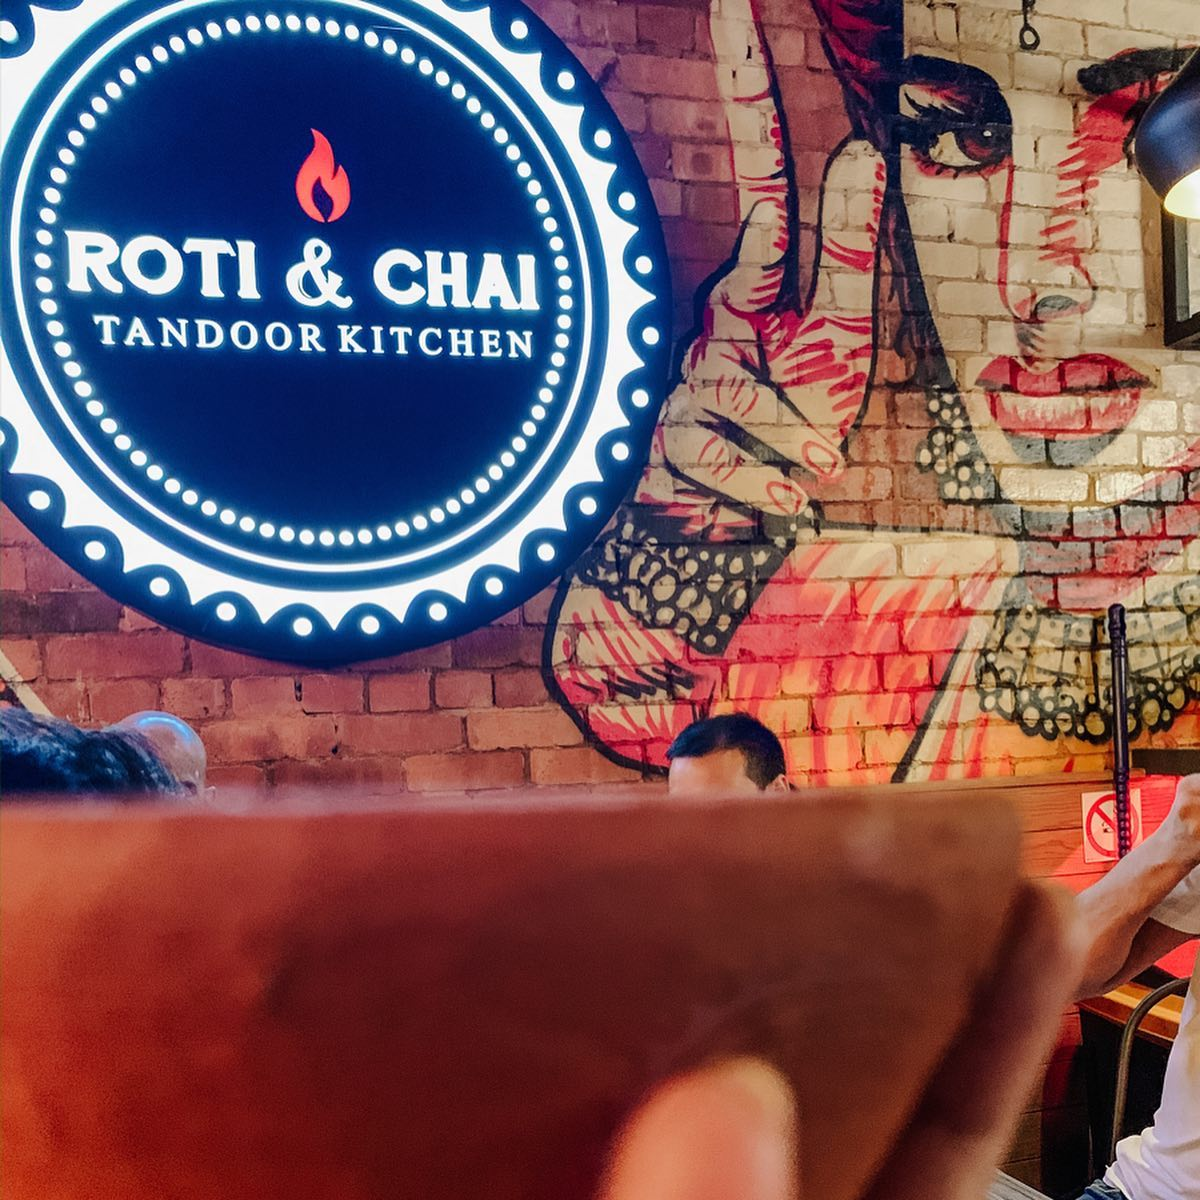 "I have watched the Roti & Chai brand being built from the ground up. I have watched everything unfold with great admiration, not just for the brand, but for the talented man behind the brand. It remains my happy place because when I visit, the hospitality and love always comes through... it exudes in everything from the food to the decor. . .  Yesterday, I had the pleasure of being invited to taste one of the new desserts before its release to the public next week. I have strong Bengali roots, and this dessert is of Bengali origin - and also one of my personal favourites. . . . I present to you, Rasmalai! And the best rasmalai I have found in Durban ️ Rasmalai is a Bengali dessert consisting of soft paneer balls immersed in chilled creamy milk. Like Rasgullas, Rasmalai is also made with homemade cheese known as ""paneer"" - Instead of being soaked in sugar syrup like Rasgullas, Rasmalai is soaked in sweet, flavoured milk and topped with pistachios or slivered almonds.  Make sure to visit @roti_and_chai next week to try this amazing new dessert on offer. I can promise you that you will not be disappointed.  I took a whole squad for sampling last night and everyone gave the @roti_and_chai RASMALAI a big   What is your current favorite at @roti_and_chai ? Or what would you like to see added to the menu? Tag  @roti_and_chai and let me know and you could win a meal voucher from R&C valued at R500  Tag three people below and make sure you are following @ria_algoo and @roti_and_chai  Giveaway closes 5th Feb 2020"